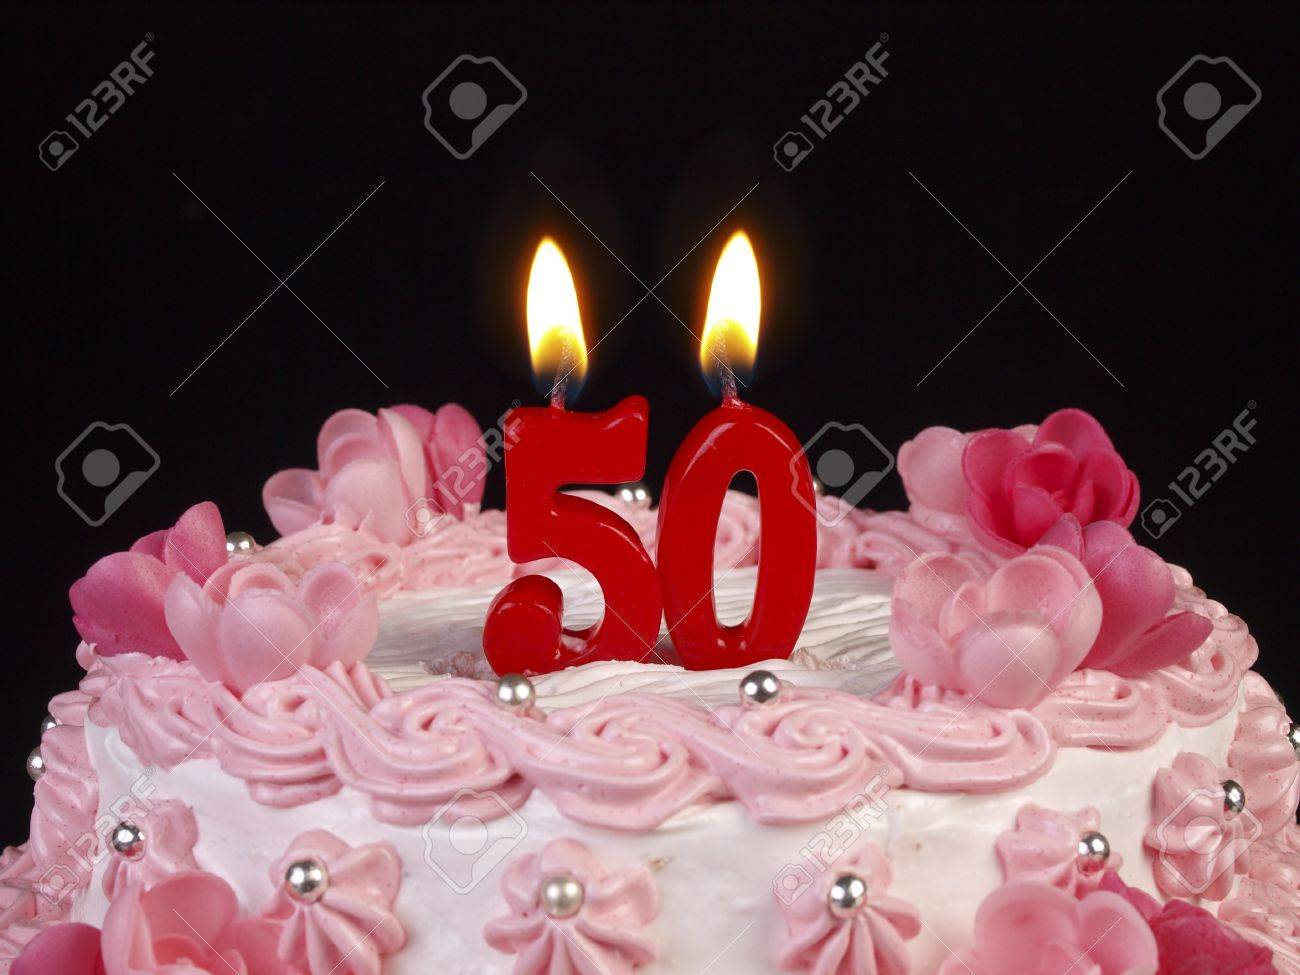 Birthday Cake With Red Candles Showing Nr 50 Stock Photo Picture